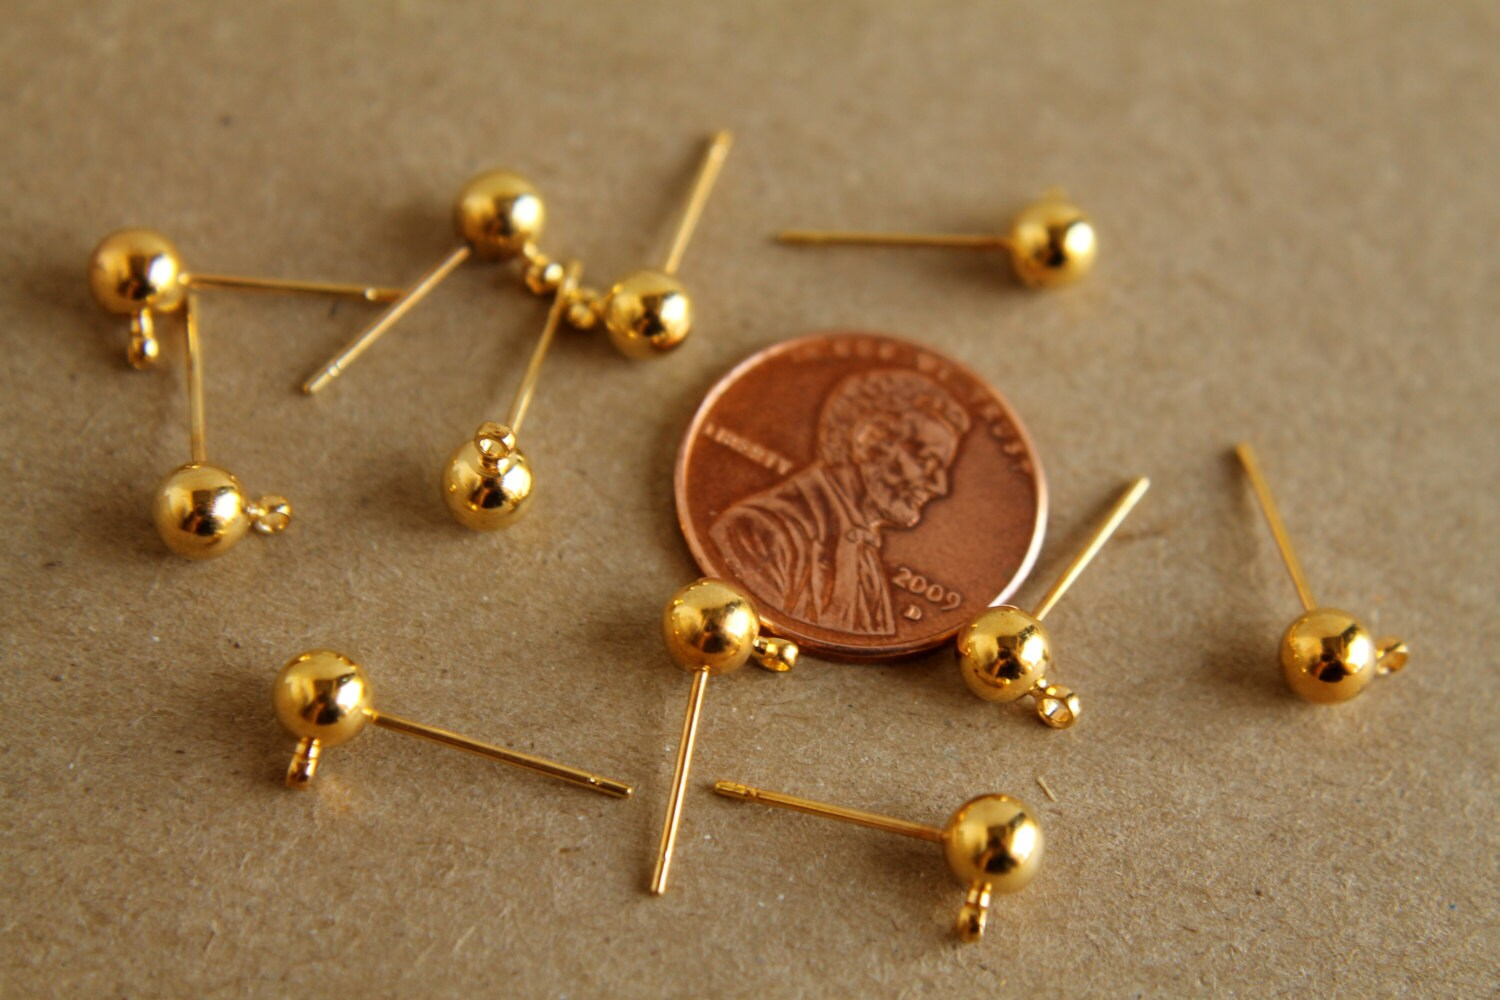 10 Pc Gold Plated Ball End Earring Posts Fi 051 From